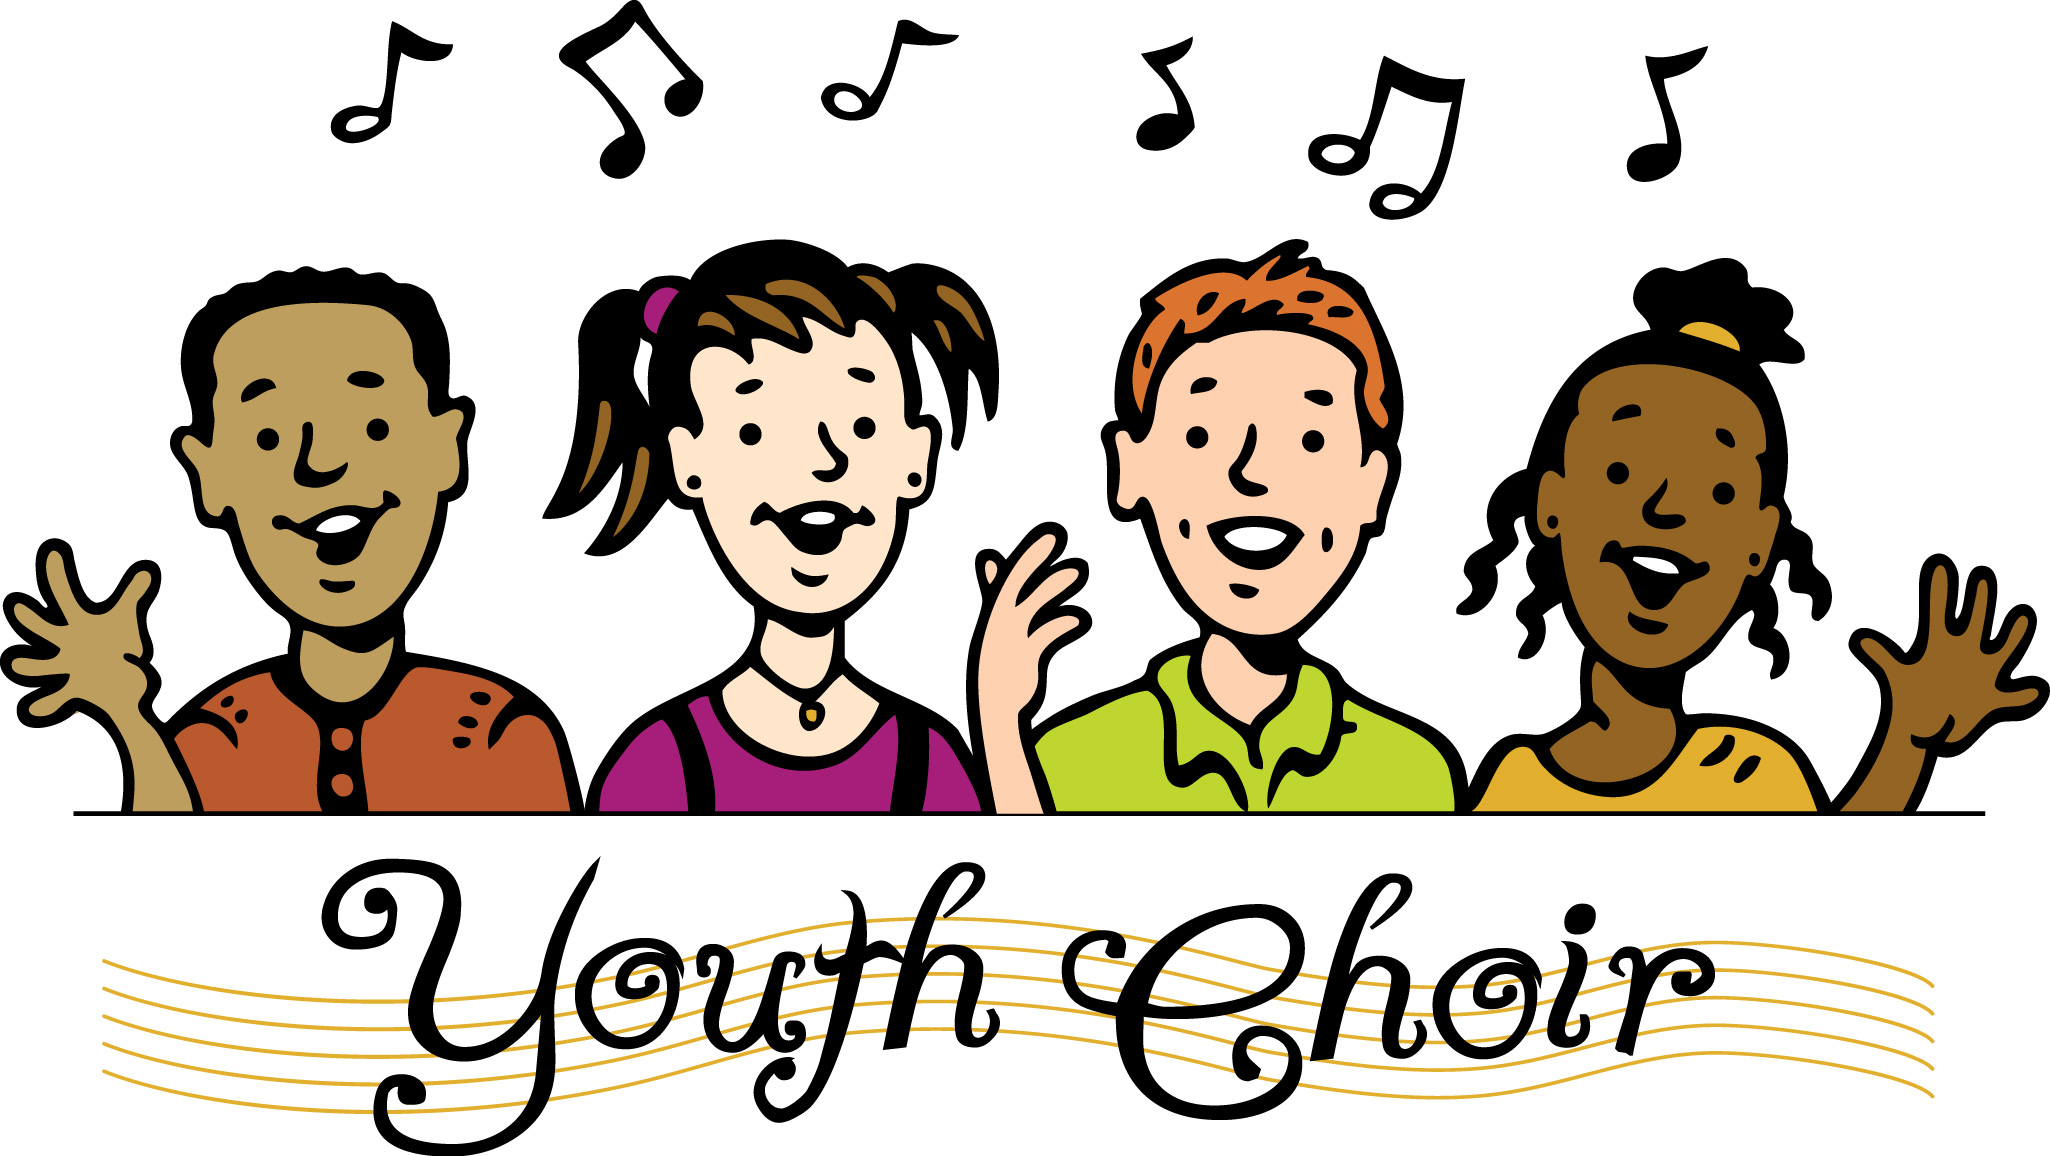 transparent download Chorus clipart child african american. Choir black and white